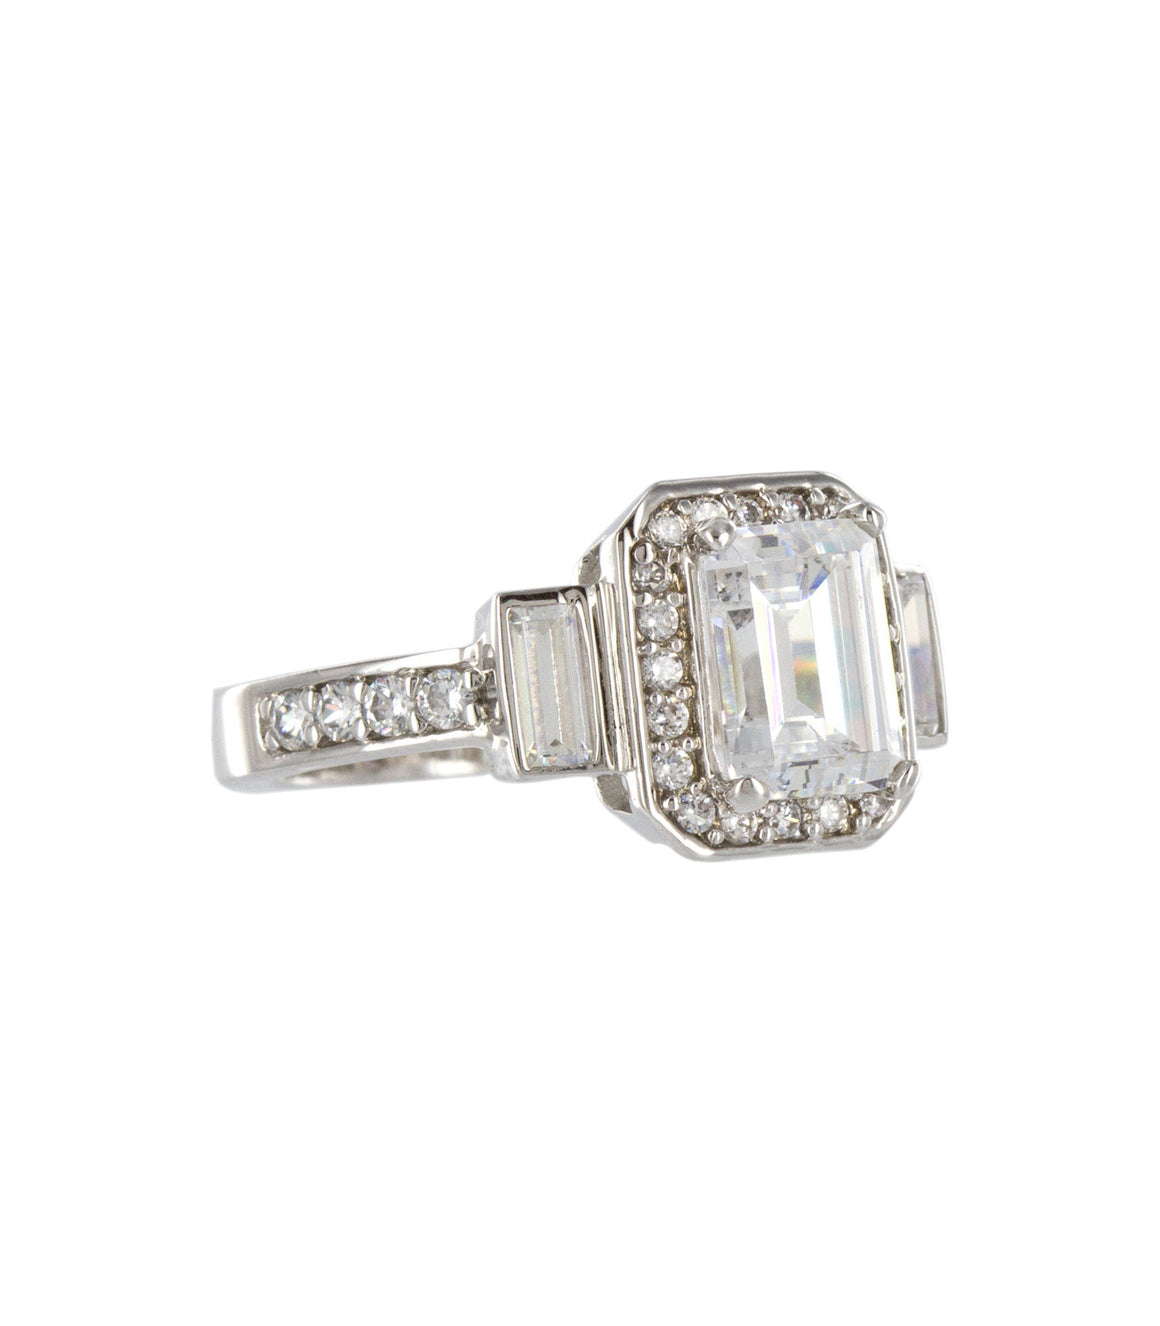 Rectangular cut cubic zirconia statement cocktail ring.